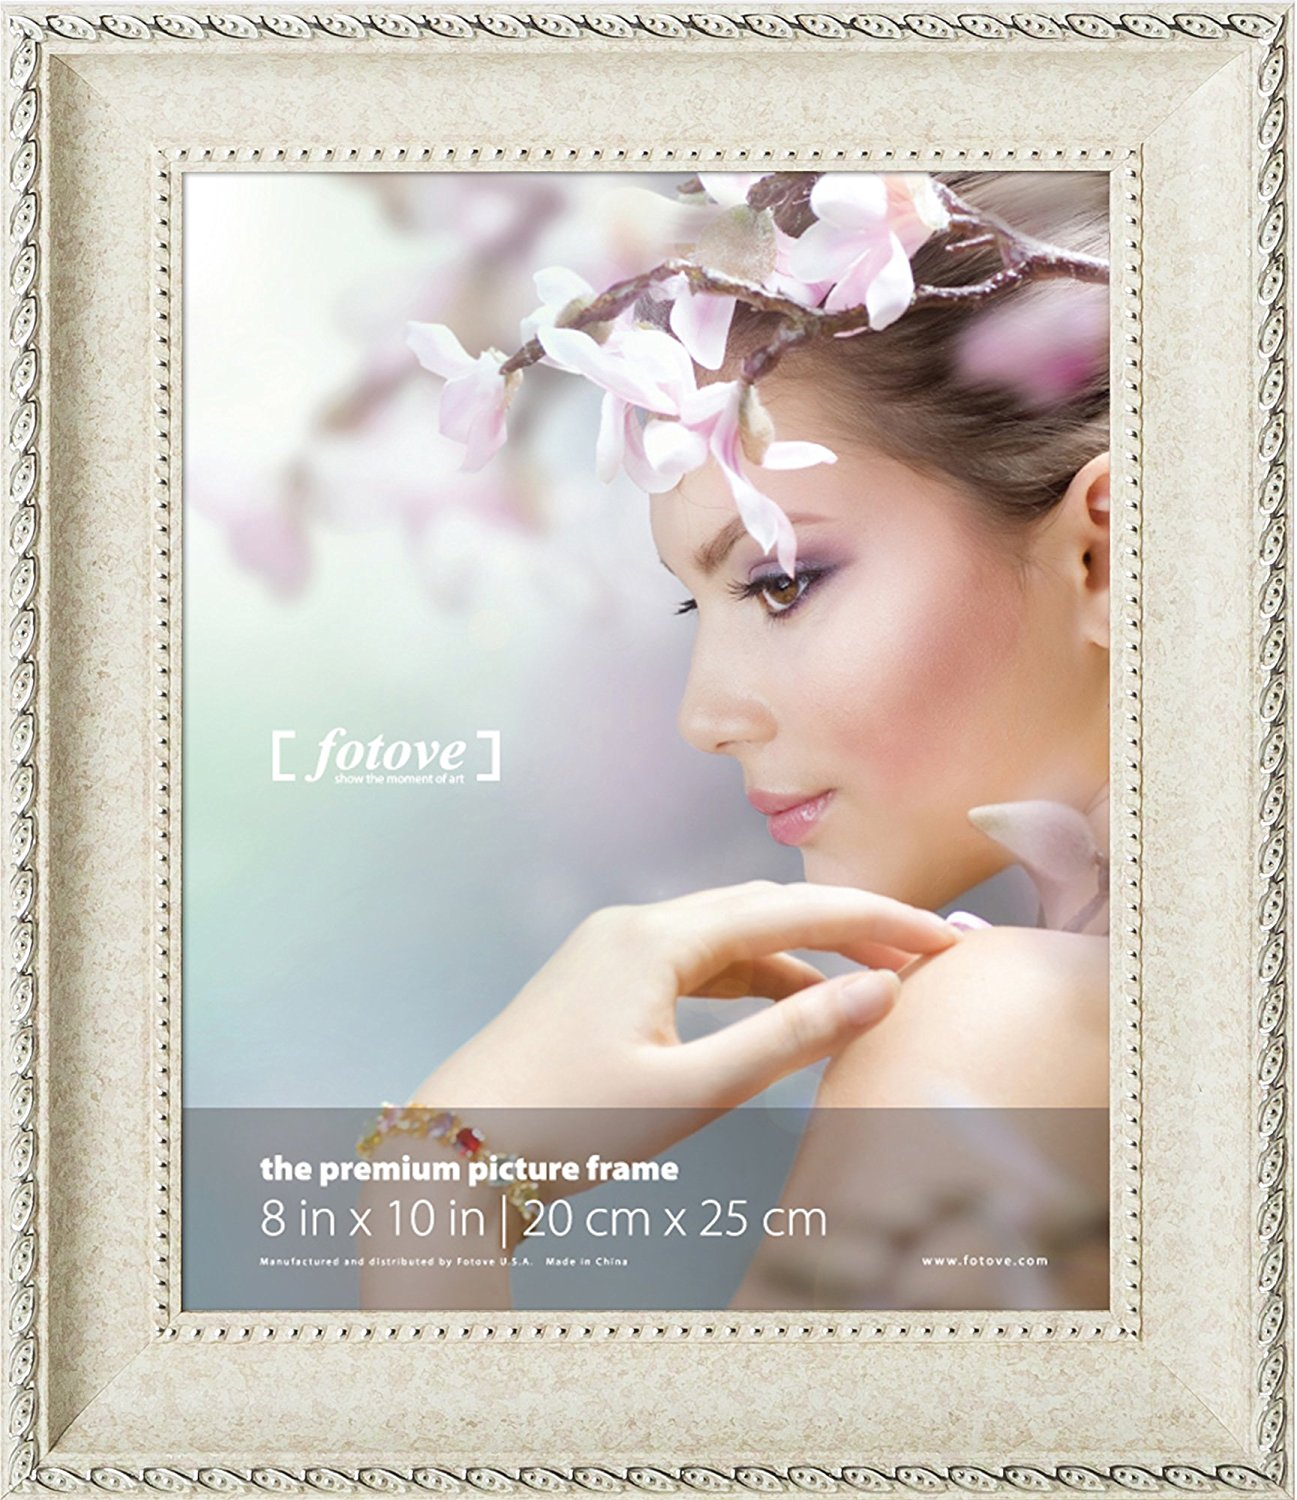 Cheap 19 x 13 frame find 19 x 13 frame deals on line at alibaba get quotations fotove 13x19 victoria ii picture photo frame 13 in x 19 in jeuxipadfo Image collections